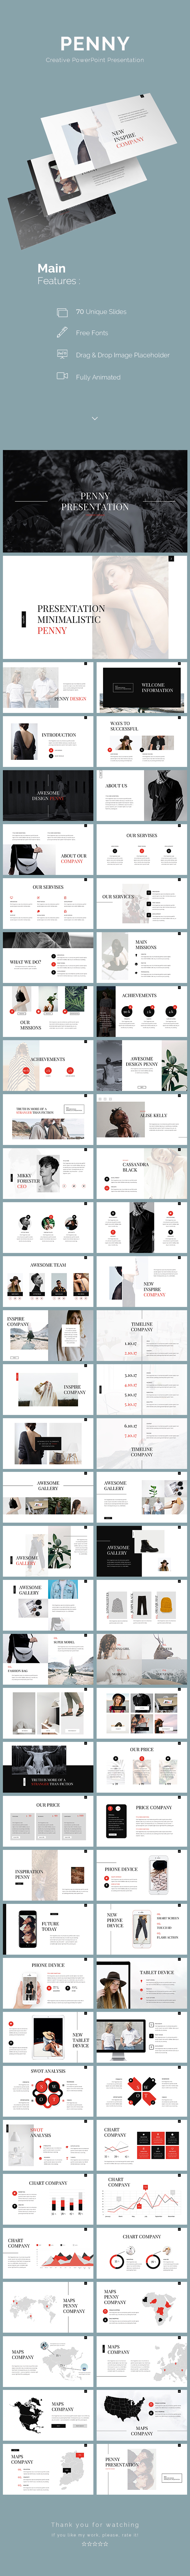 Penny PowerPoint Template - PowerPoint Templates Presentation Templates